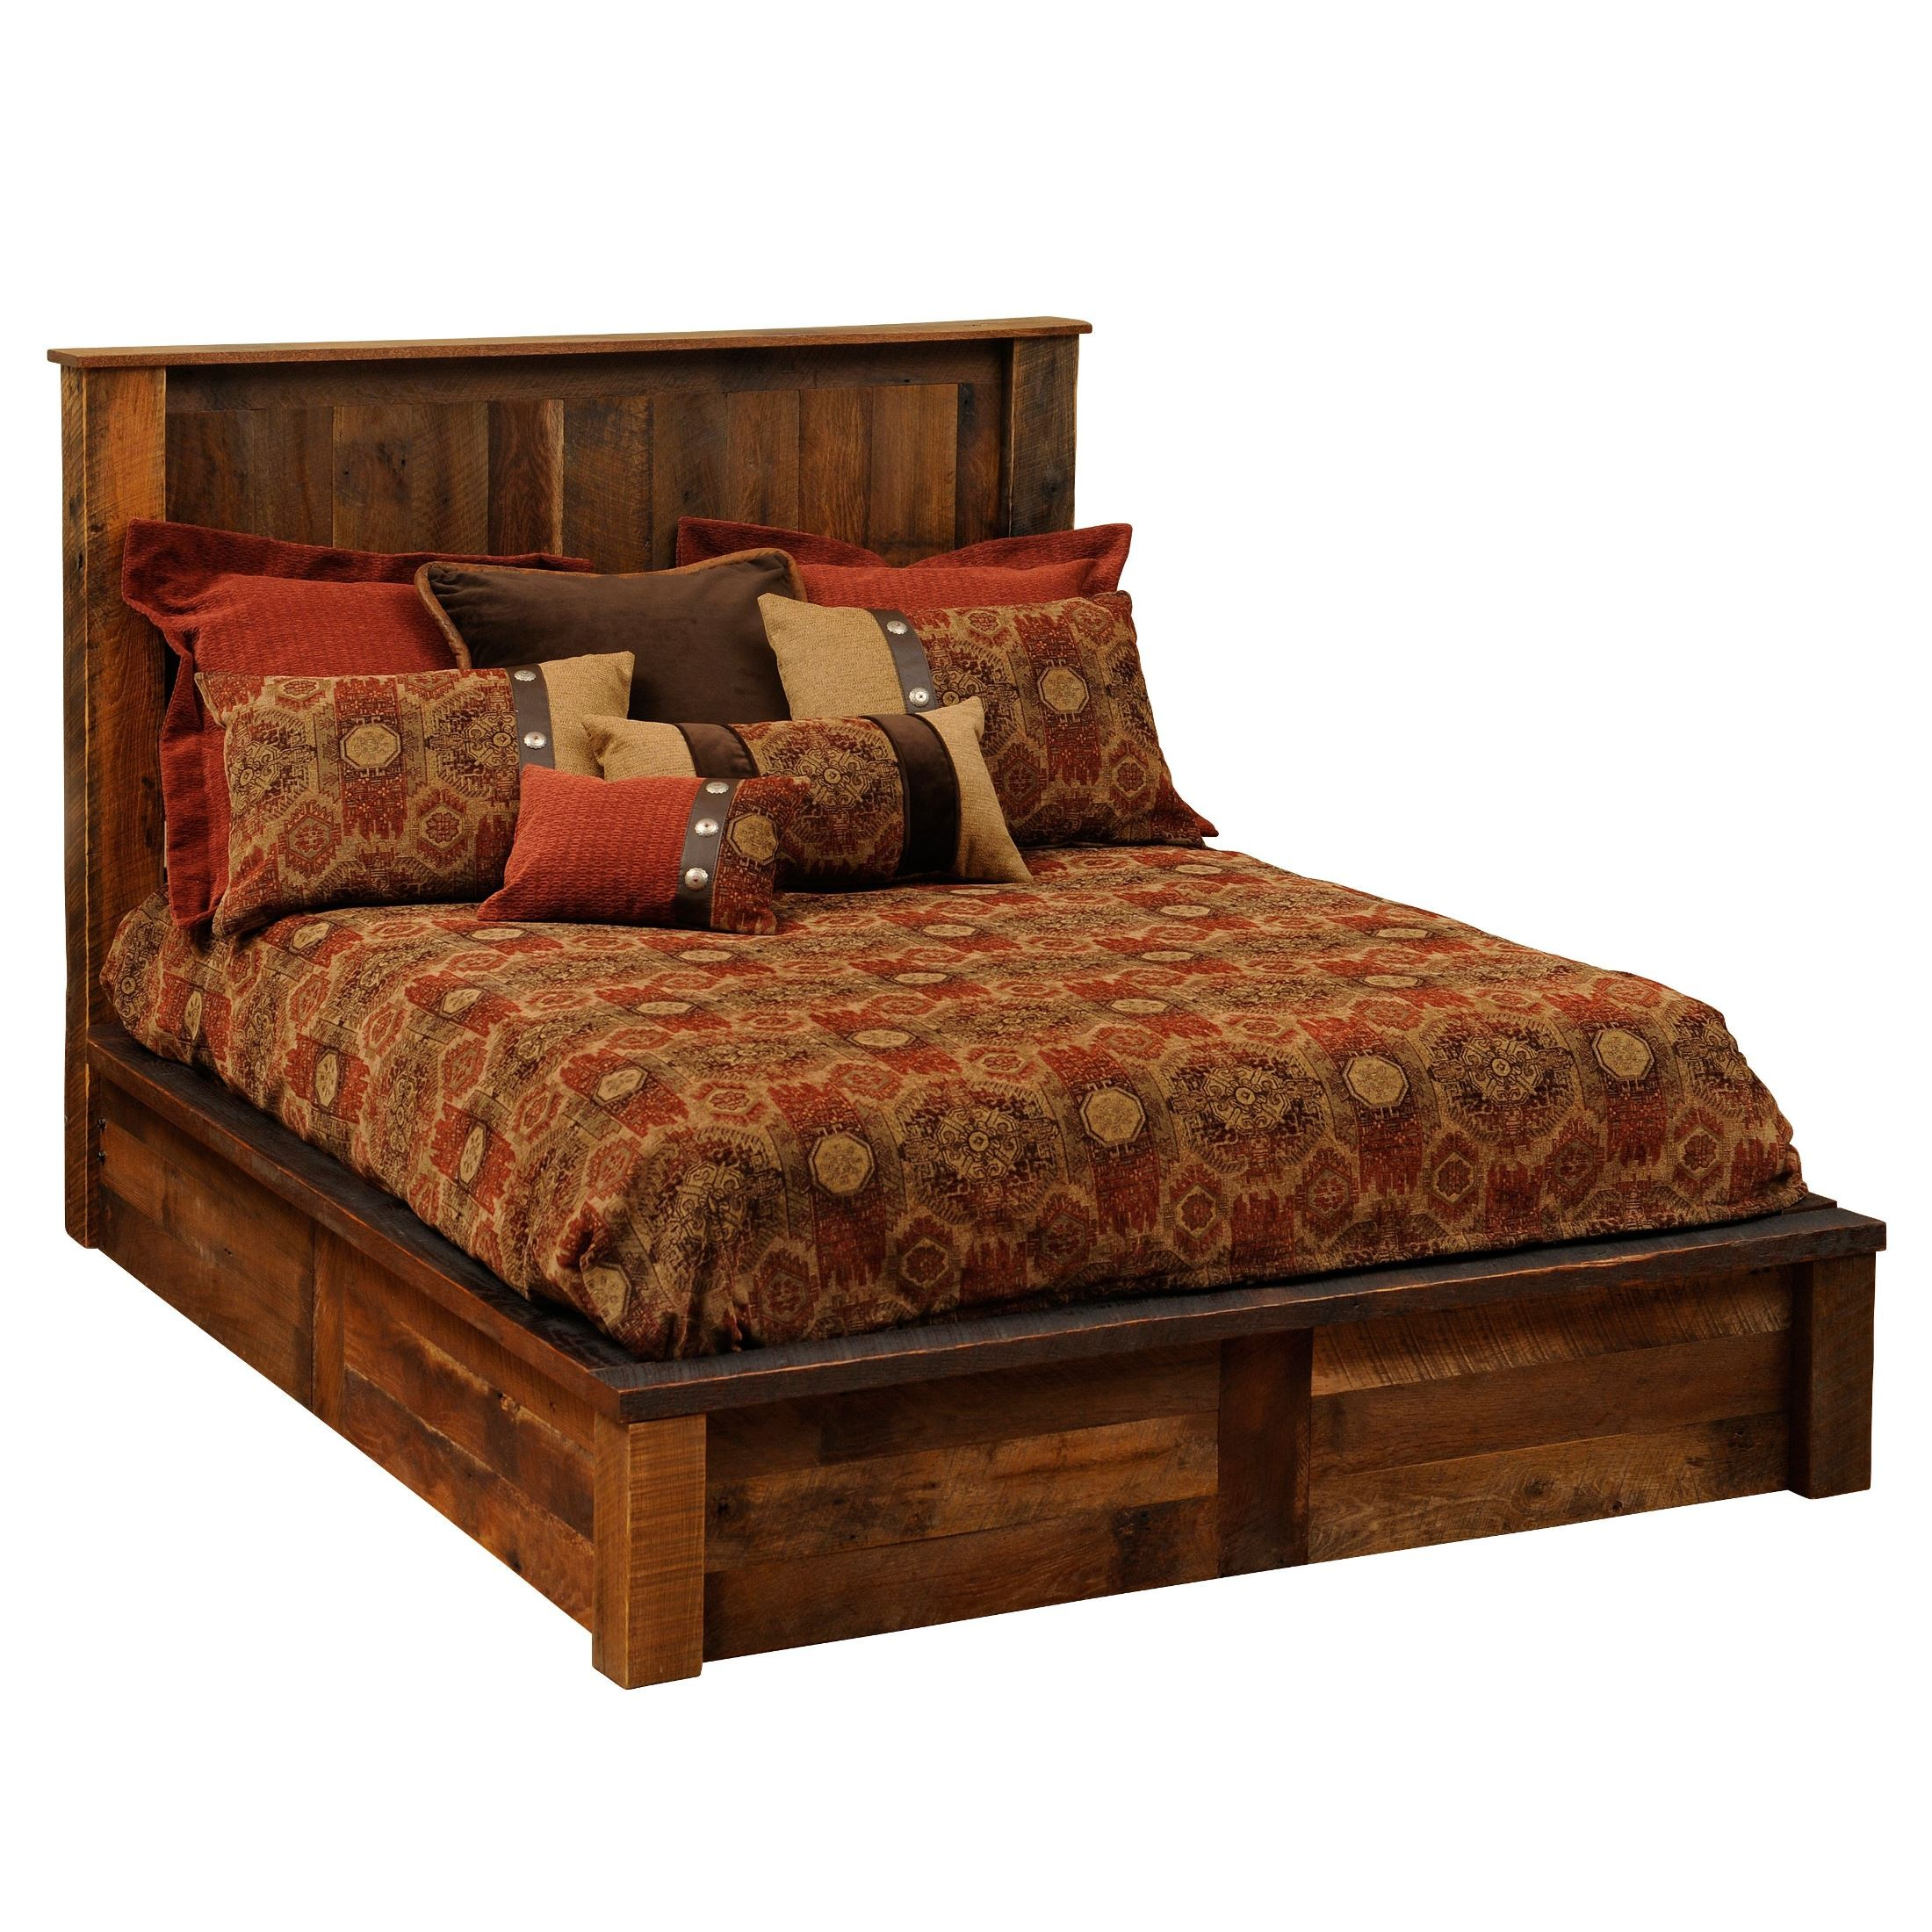 Barnwood King Platform Bed from Fireside Lodge (B10010-PF) | Coleman ...